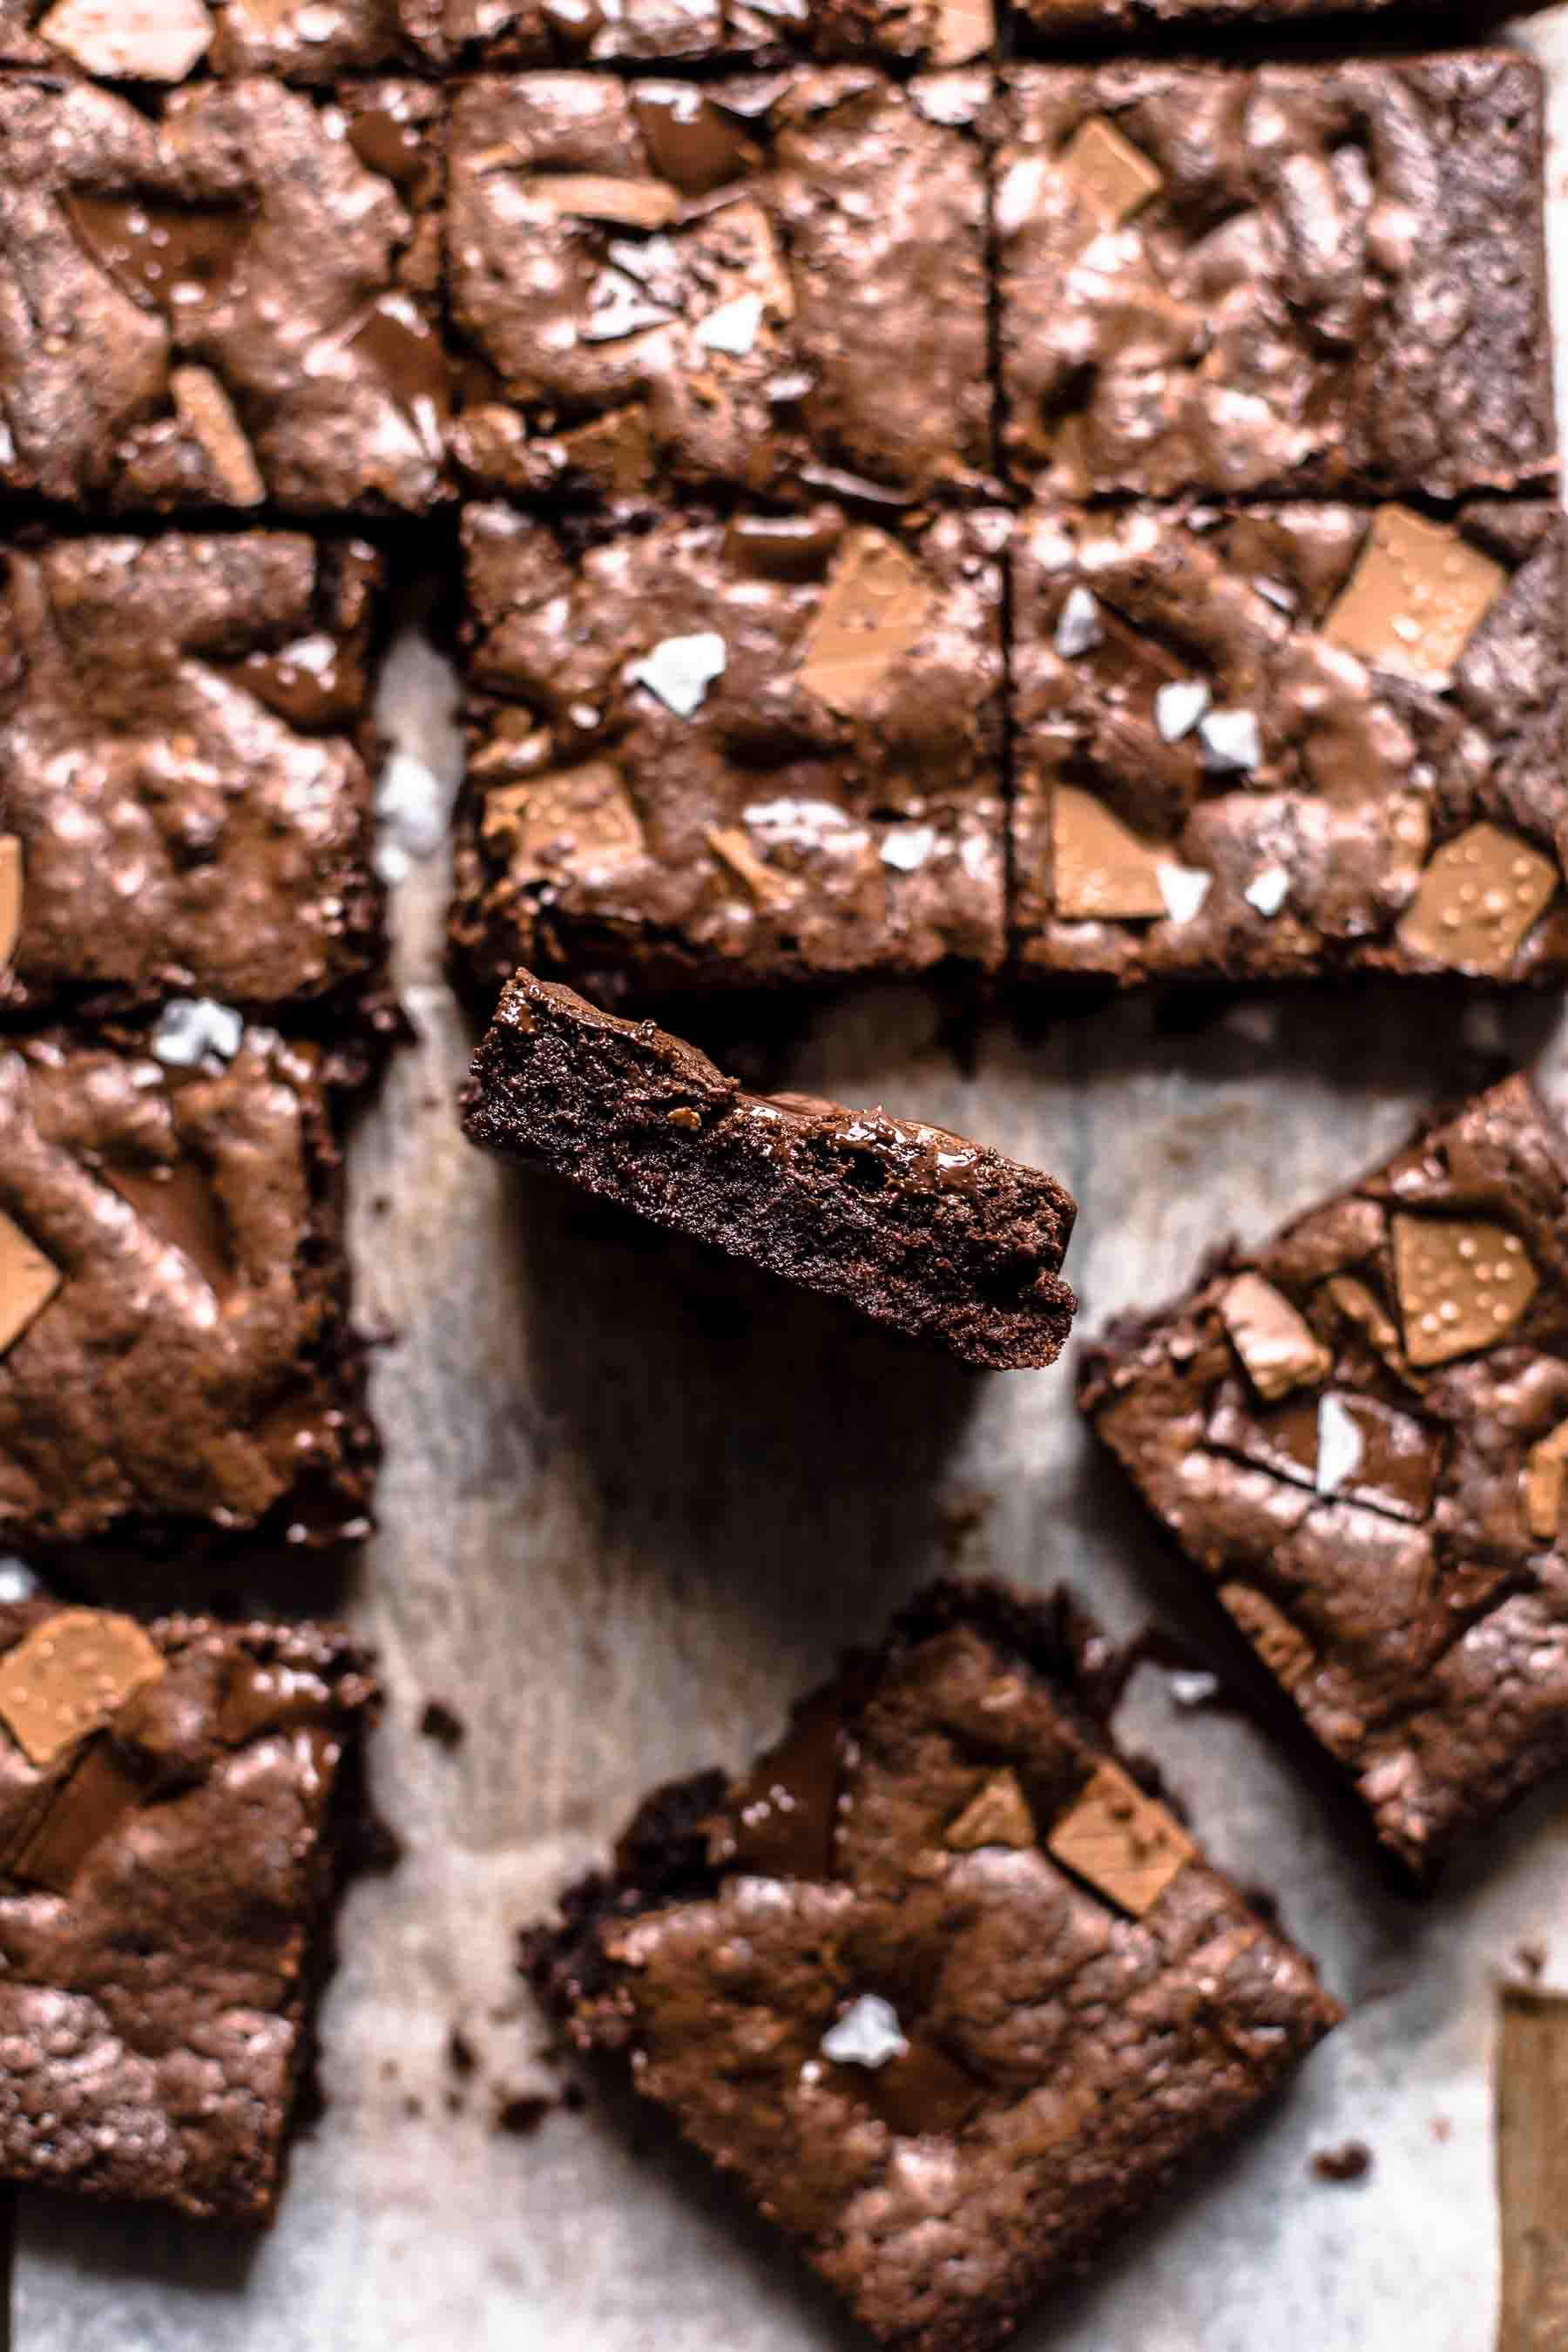 2. Brownies from Scratch